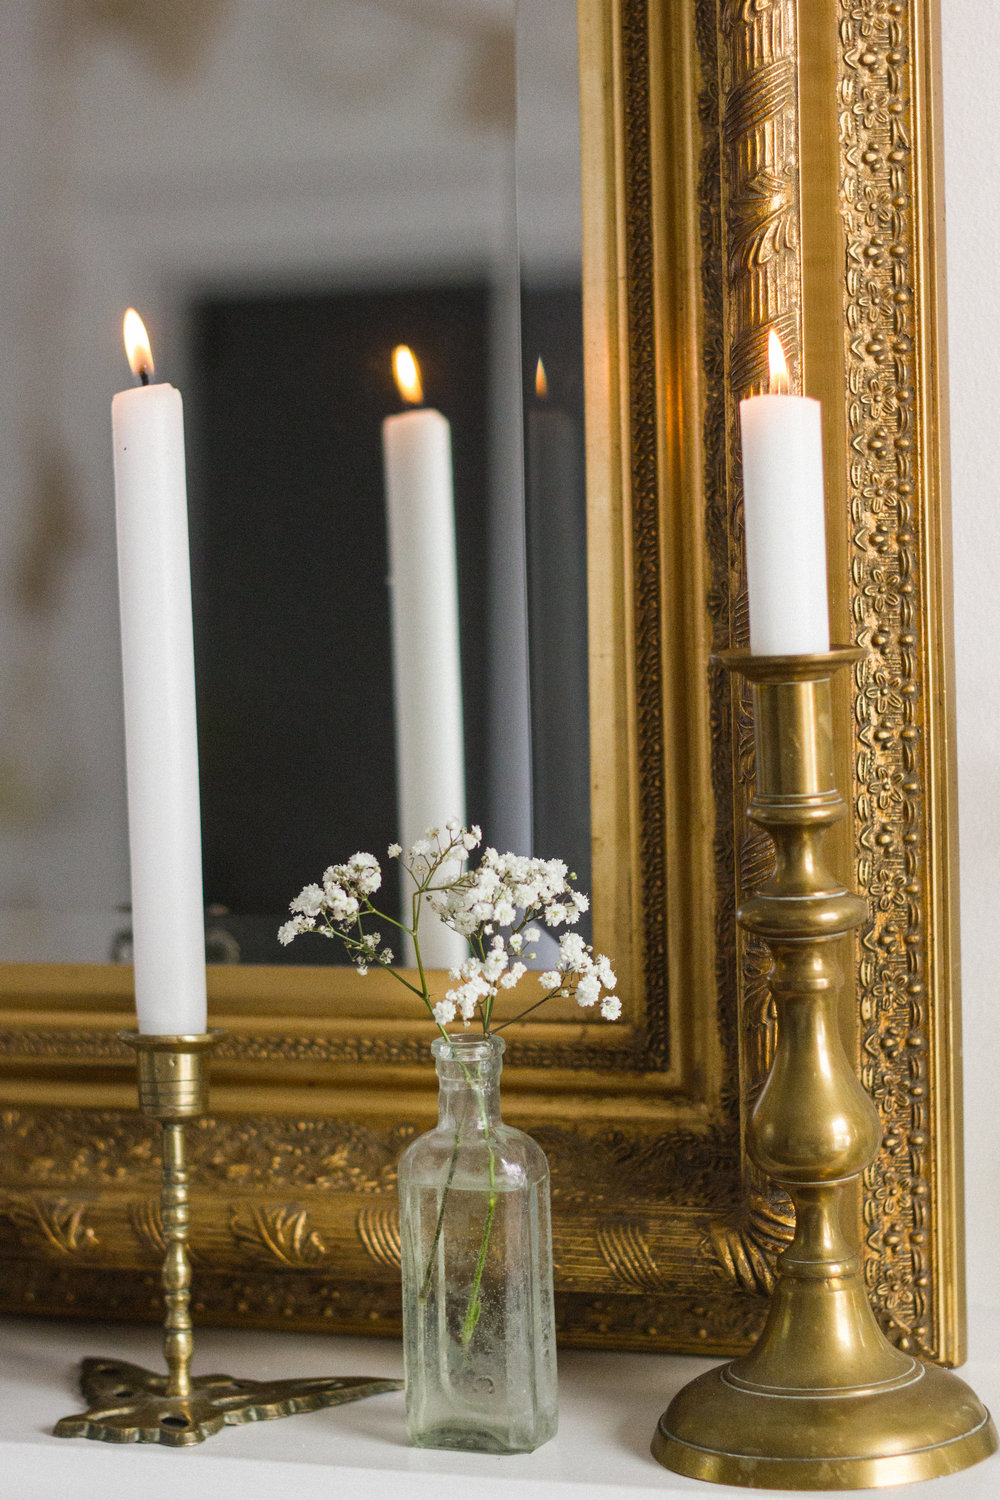 The brass of these vintage candlesticks works perfectly with the brass mirror.